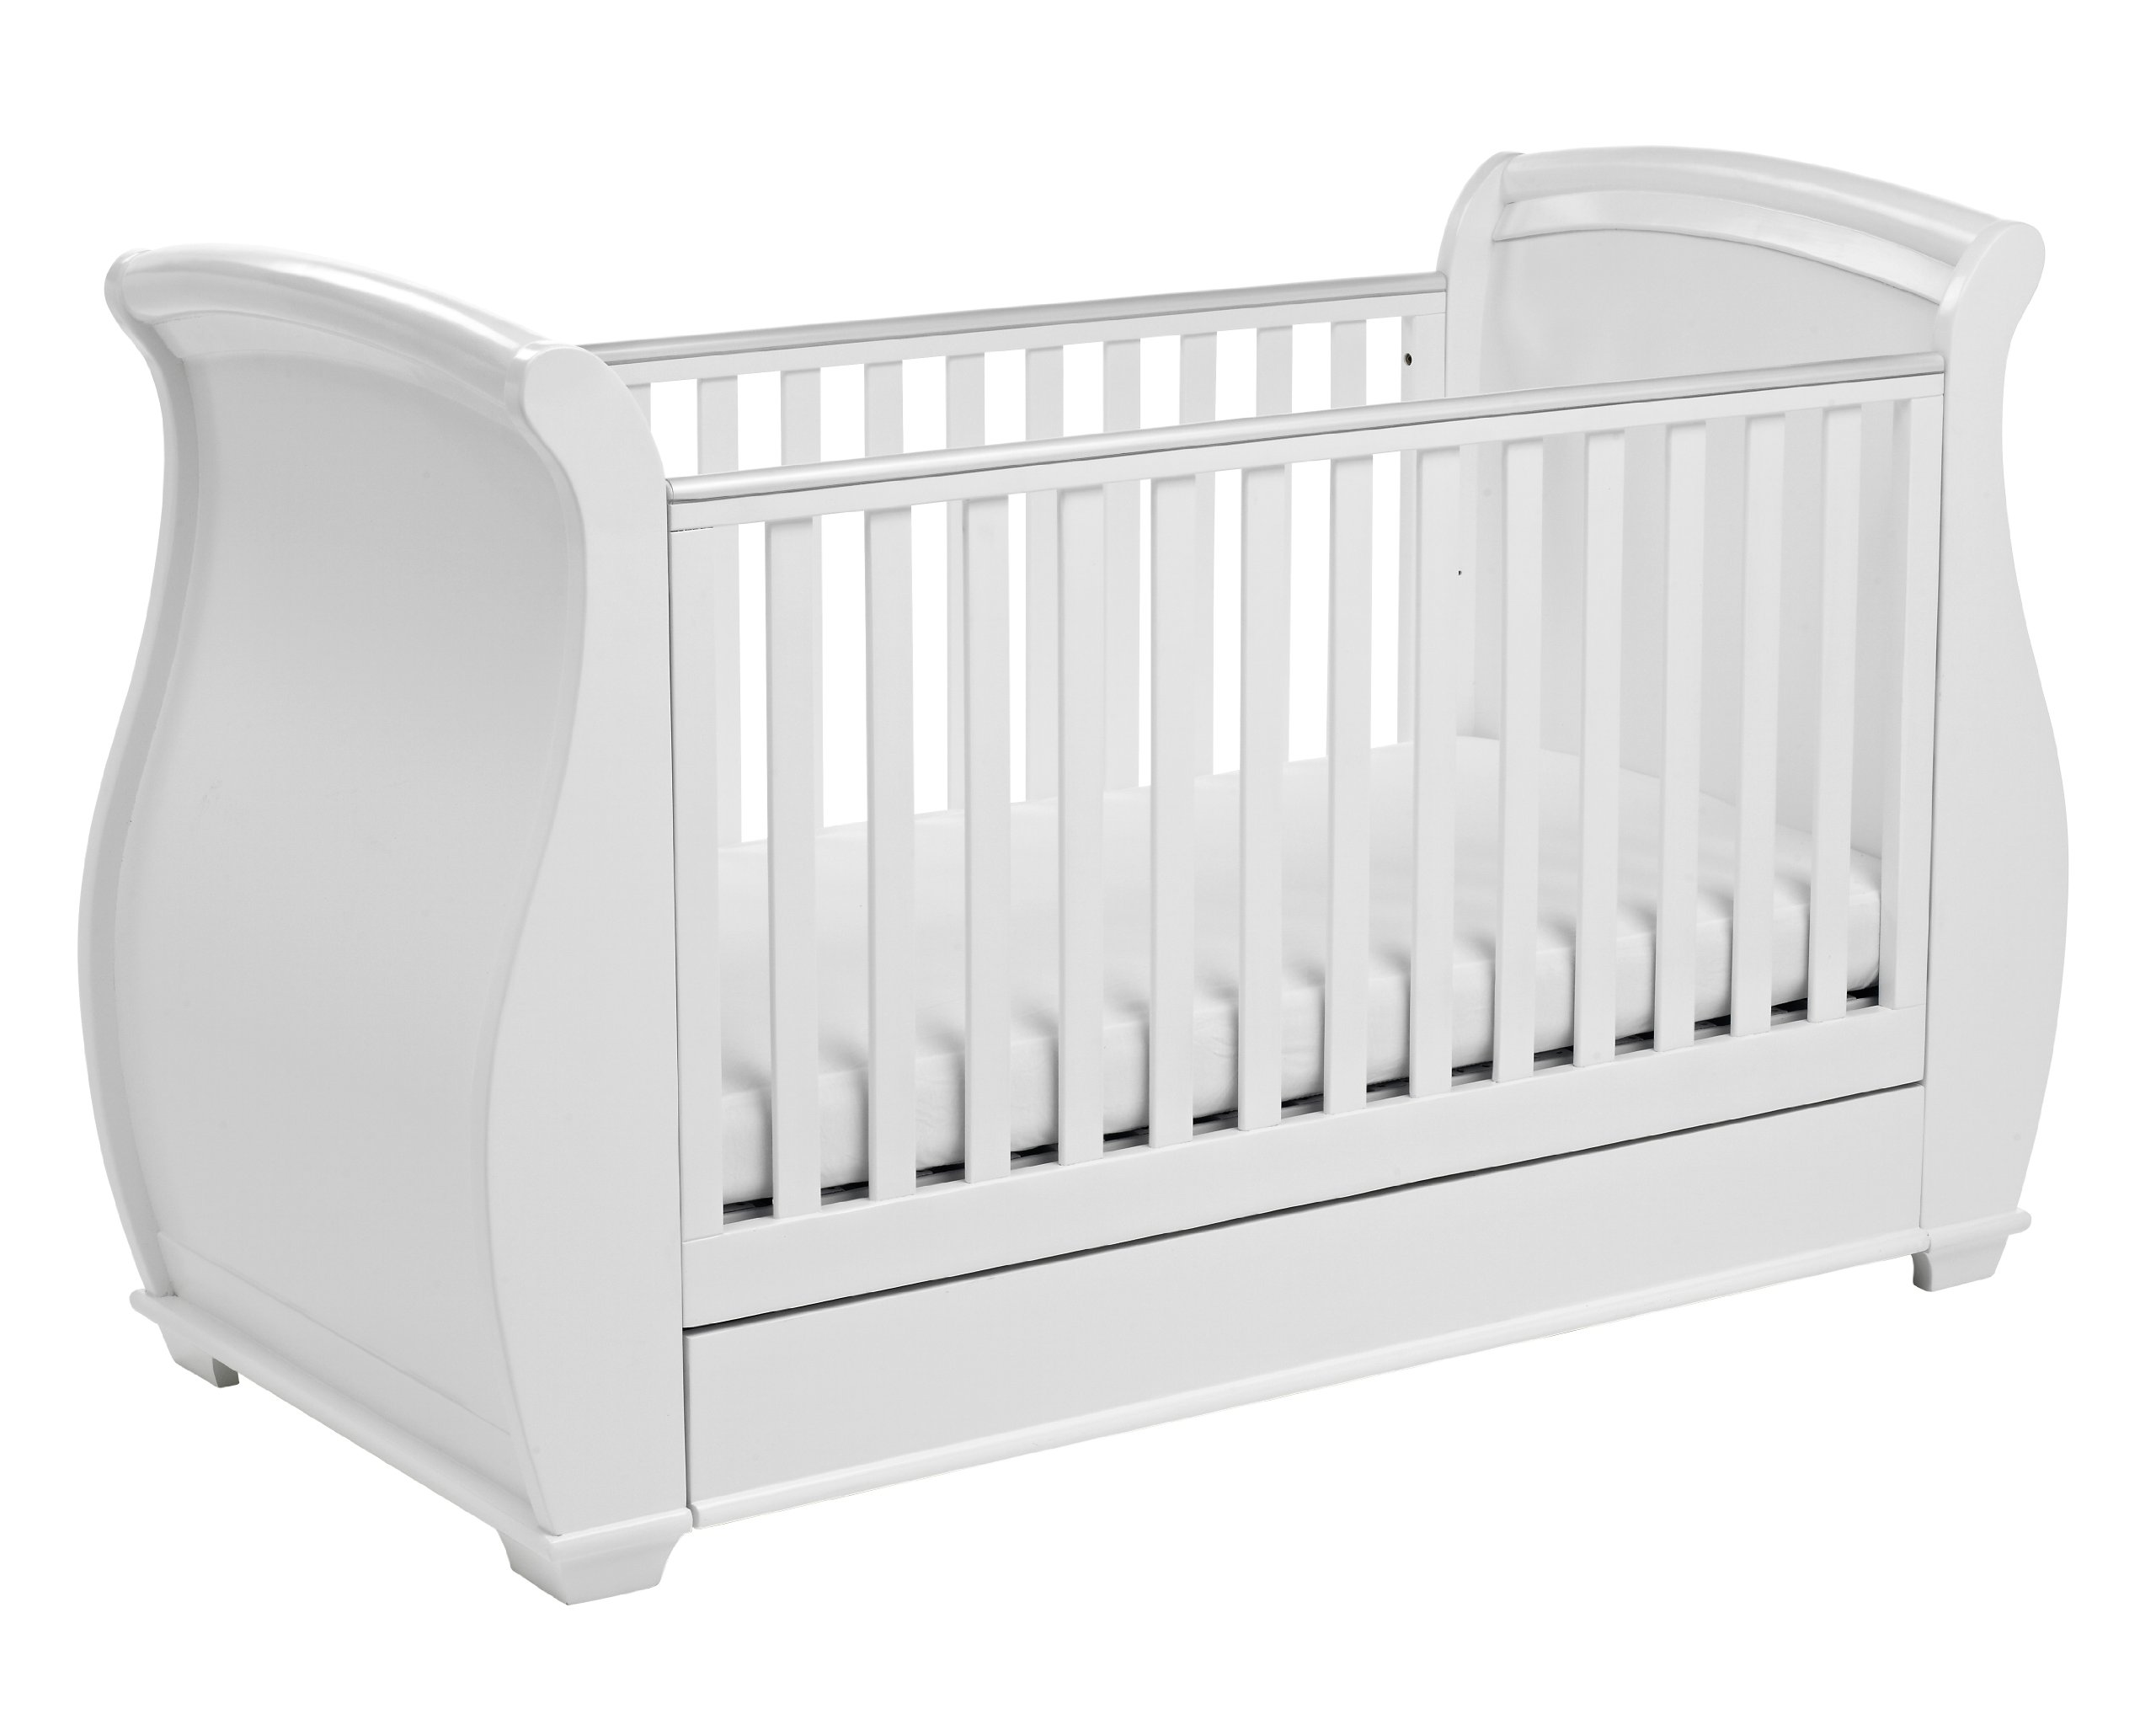 Babymore Bel Sleigh Cot Bed Dropside with Drawer (White)  Magnificent sleigh with appealing look of grandeur and solidity. Easily convert to junior bed/sofa/day bed, Meet British and European safety standards Single handed drop side mechanism allow easy access to your baby. 3